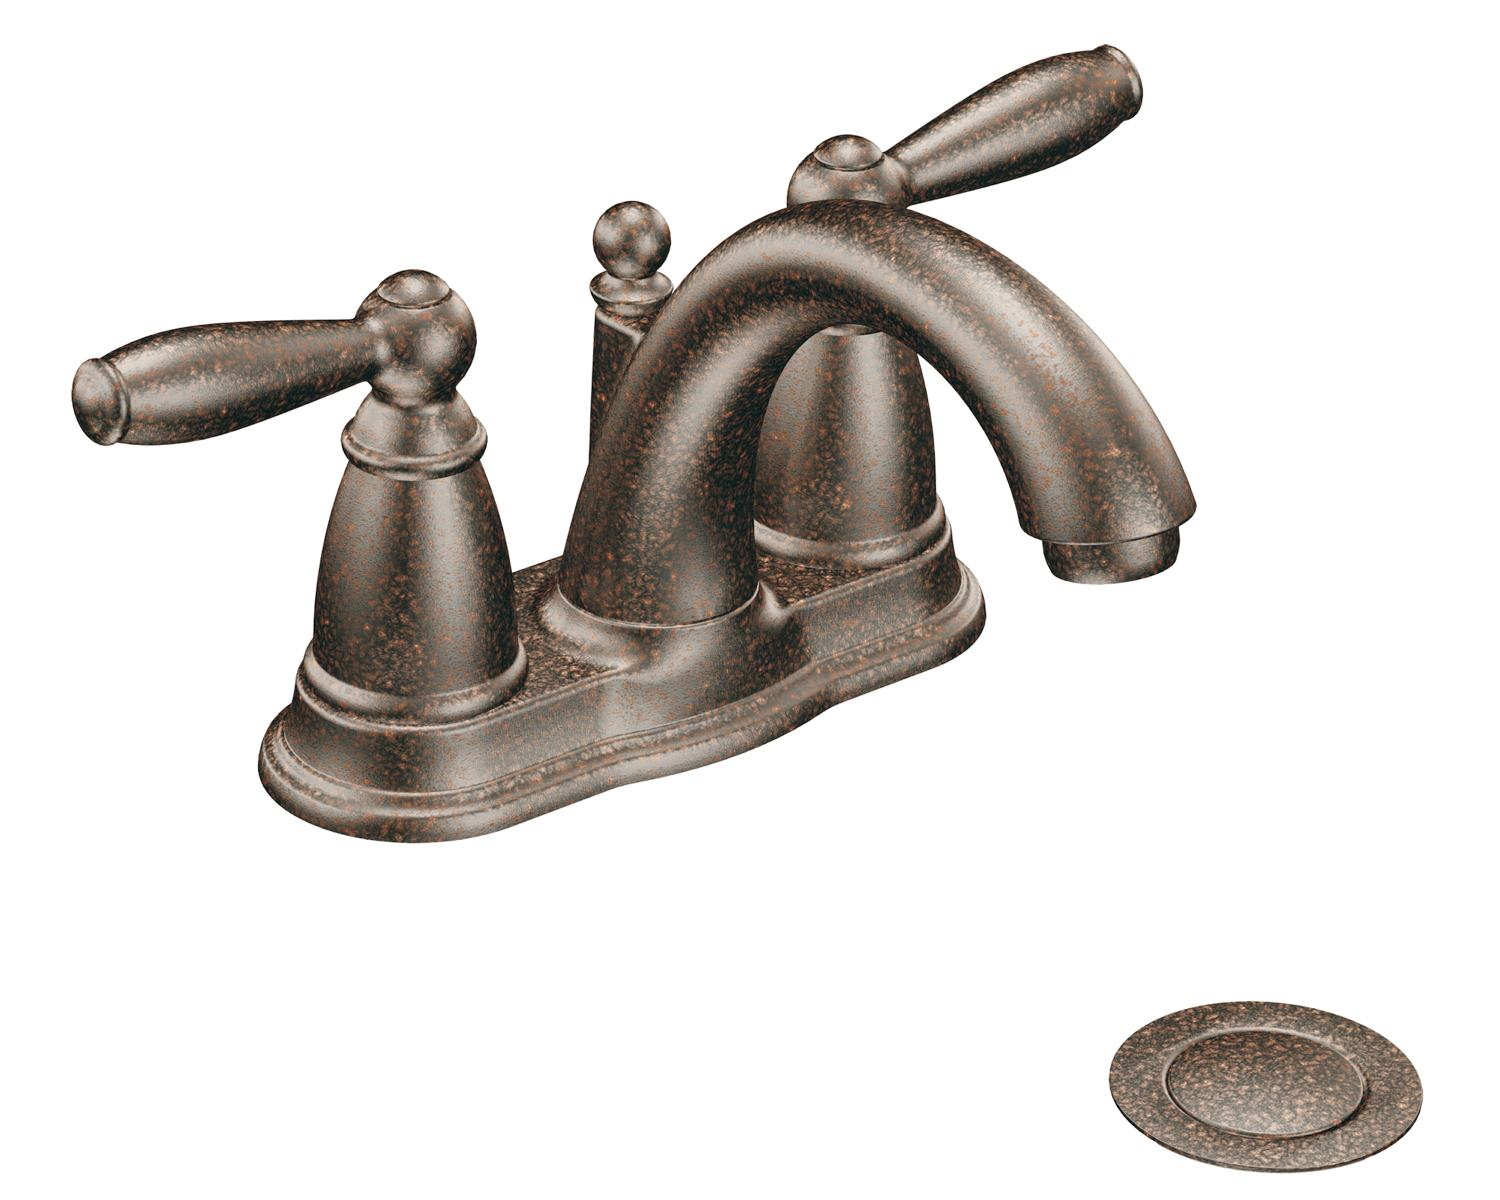 Moen 6610orb Brantford 2 Handle Lavatory Faucet With Drain